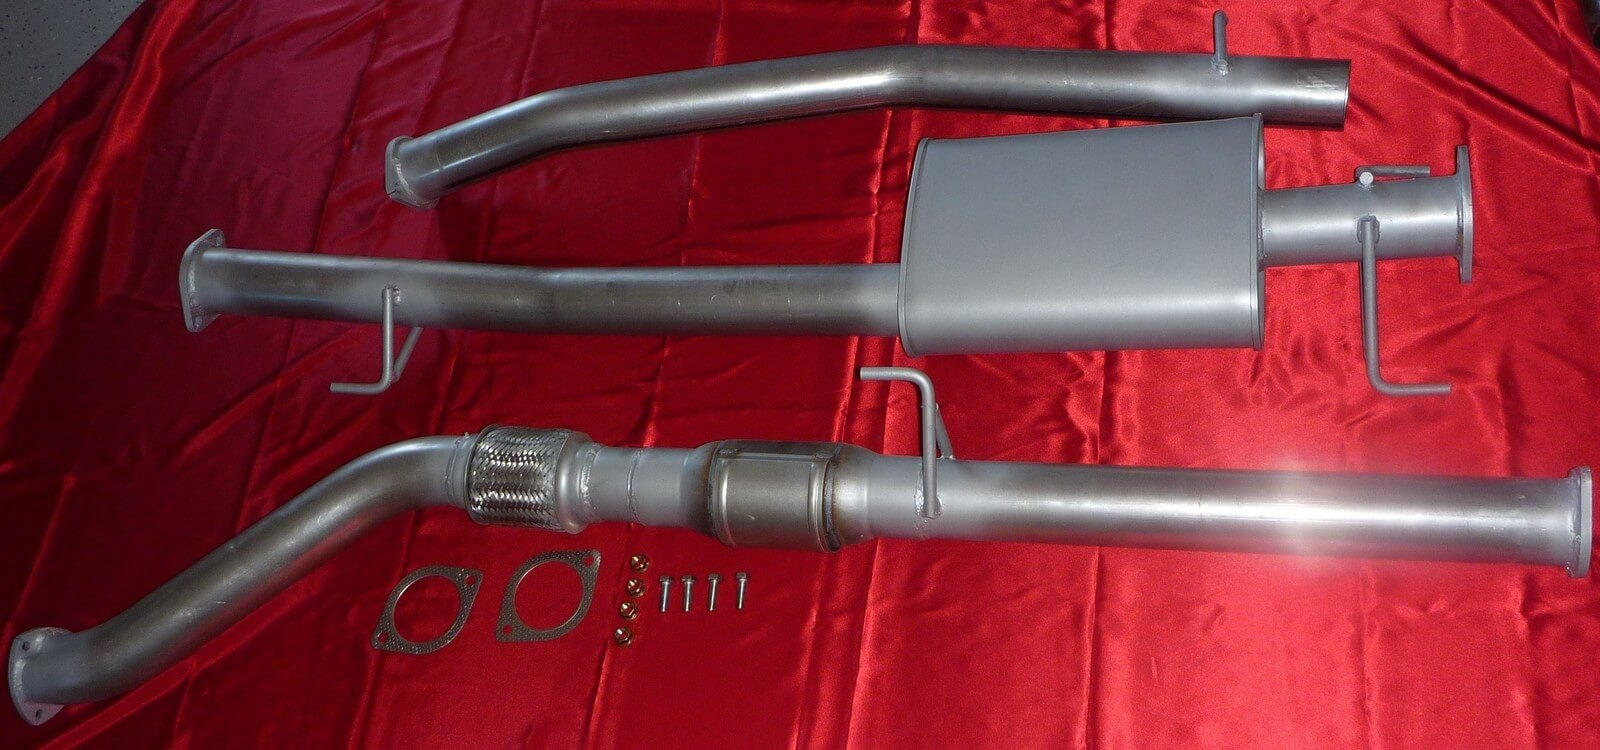 "Toyota Hilux Ute 3.0L 2005 - 2015 3"" Exhaust 4x4 Turbo Diesel with cat 409 Stainless Steel 3 inch Turbo Back Exhaust Syste - Click to enlarge picture."